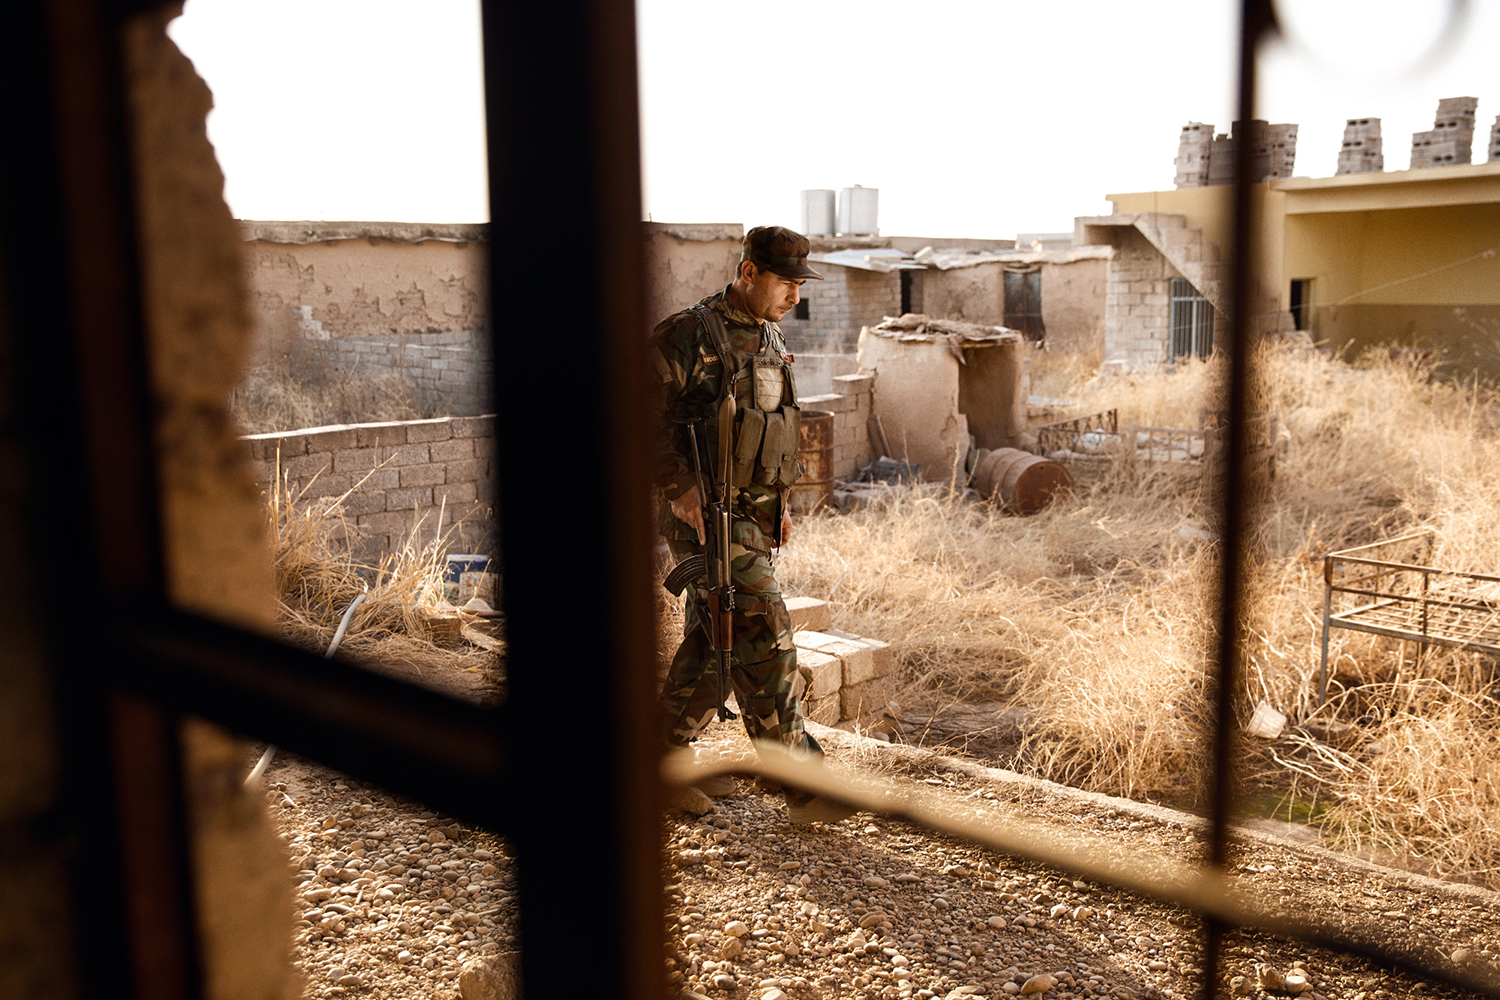 A Peshmerga fighter with his weapon in the ruins of a kurdish town